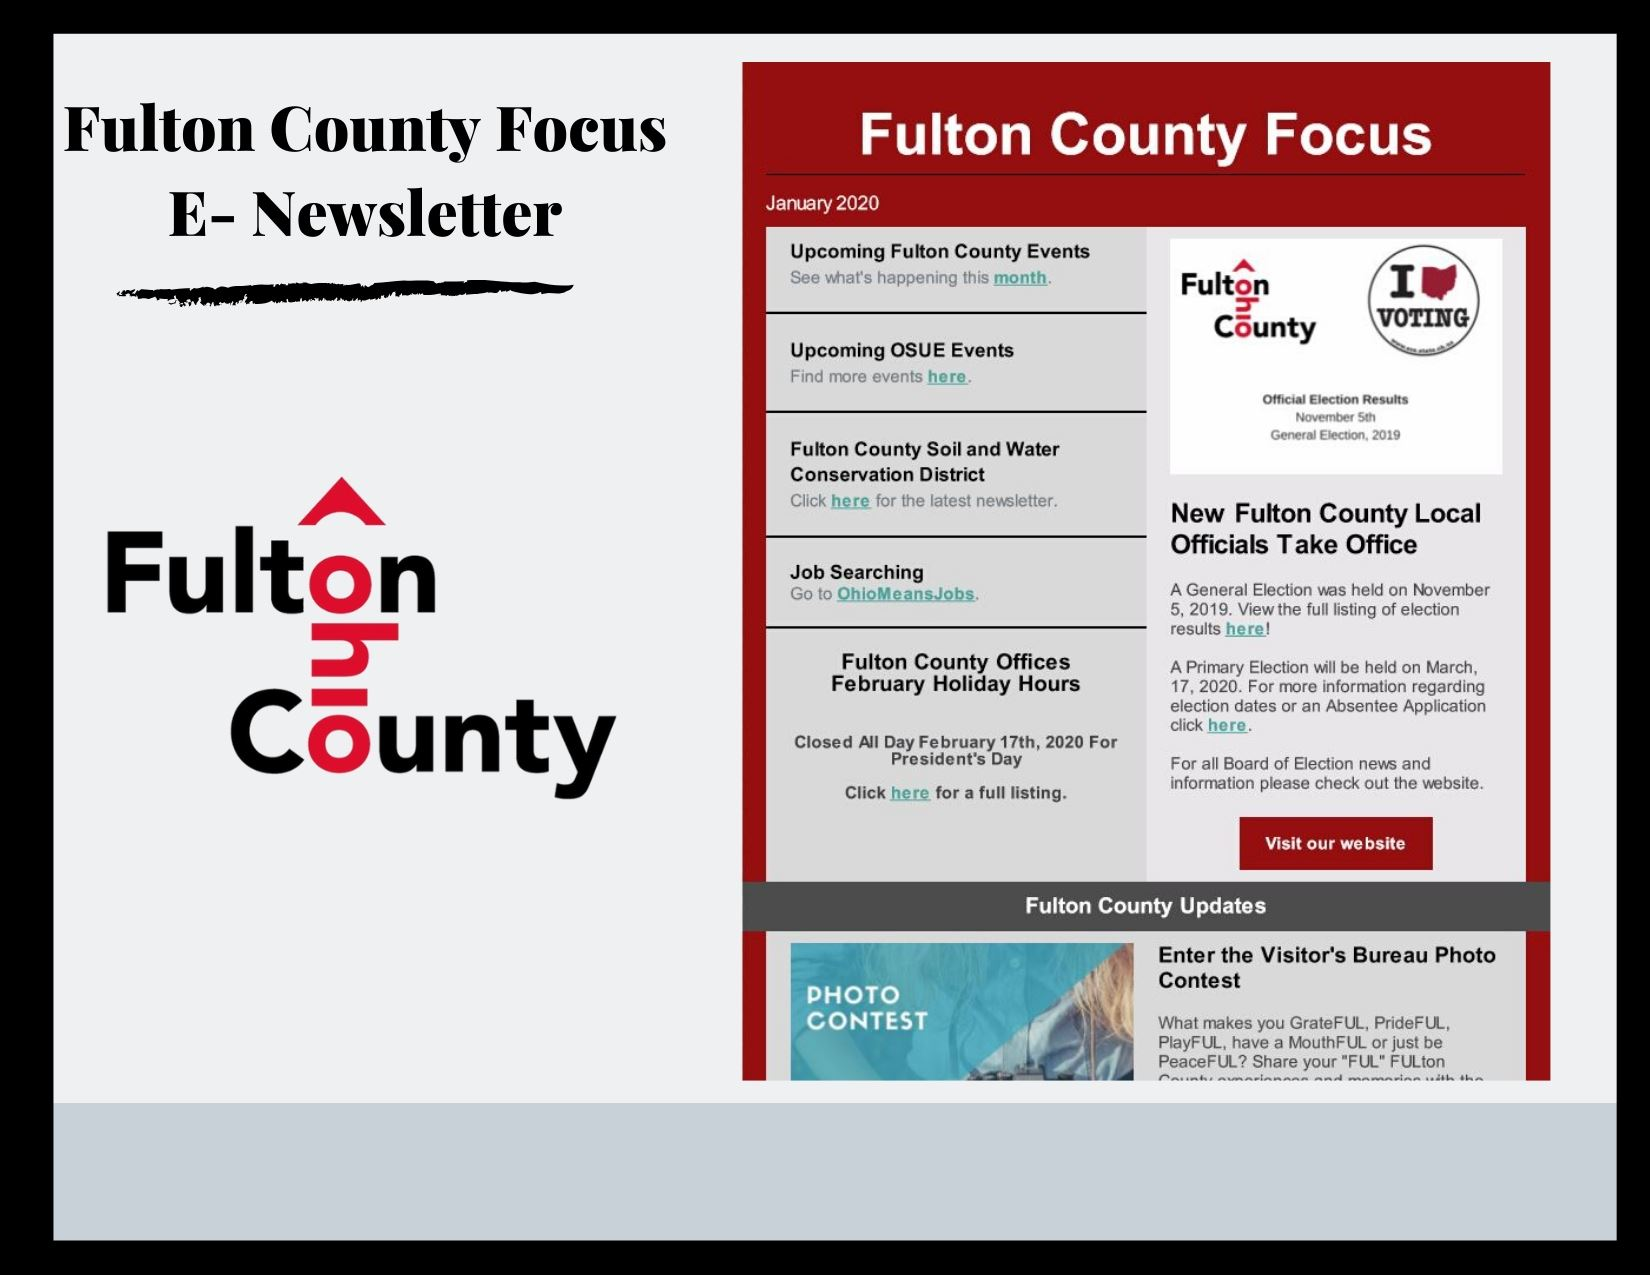 Fulton County Focus January 2020